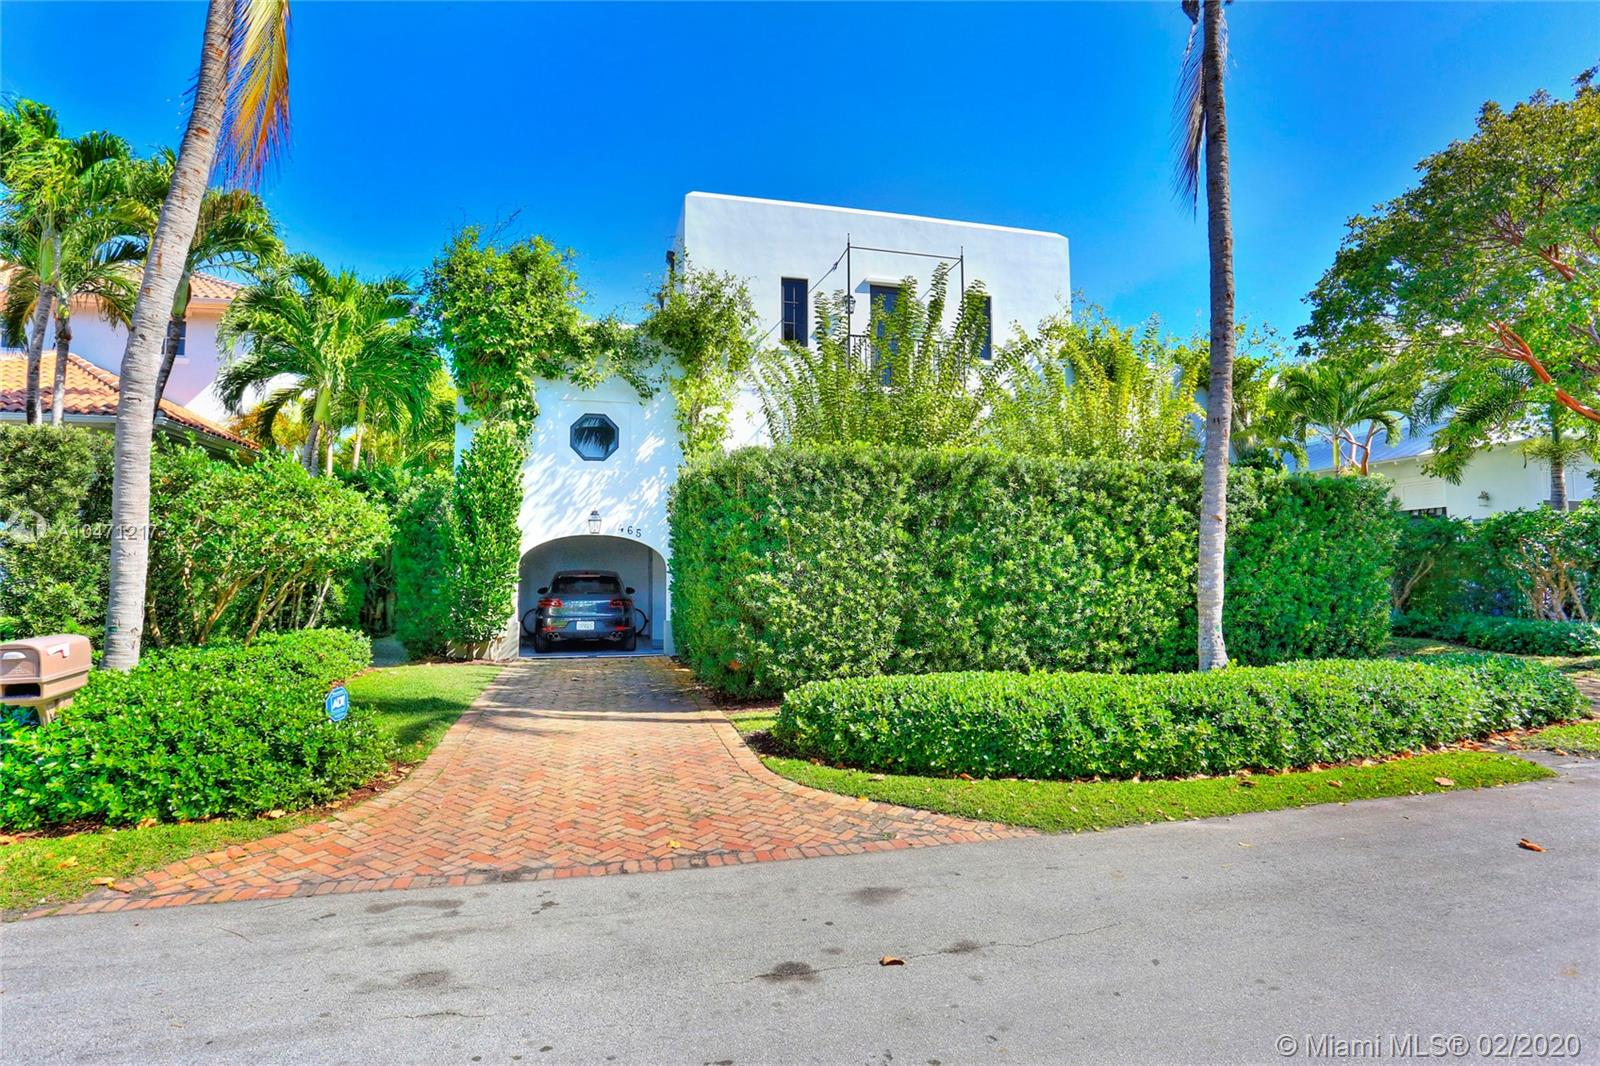 465 HAMPTON LN, Key Biscayne in Miami-dade County County, FL 33149 Home for Sale